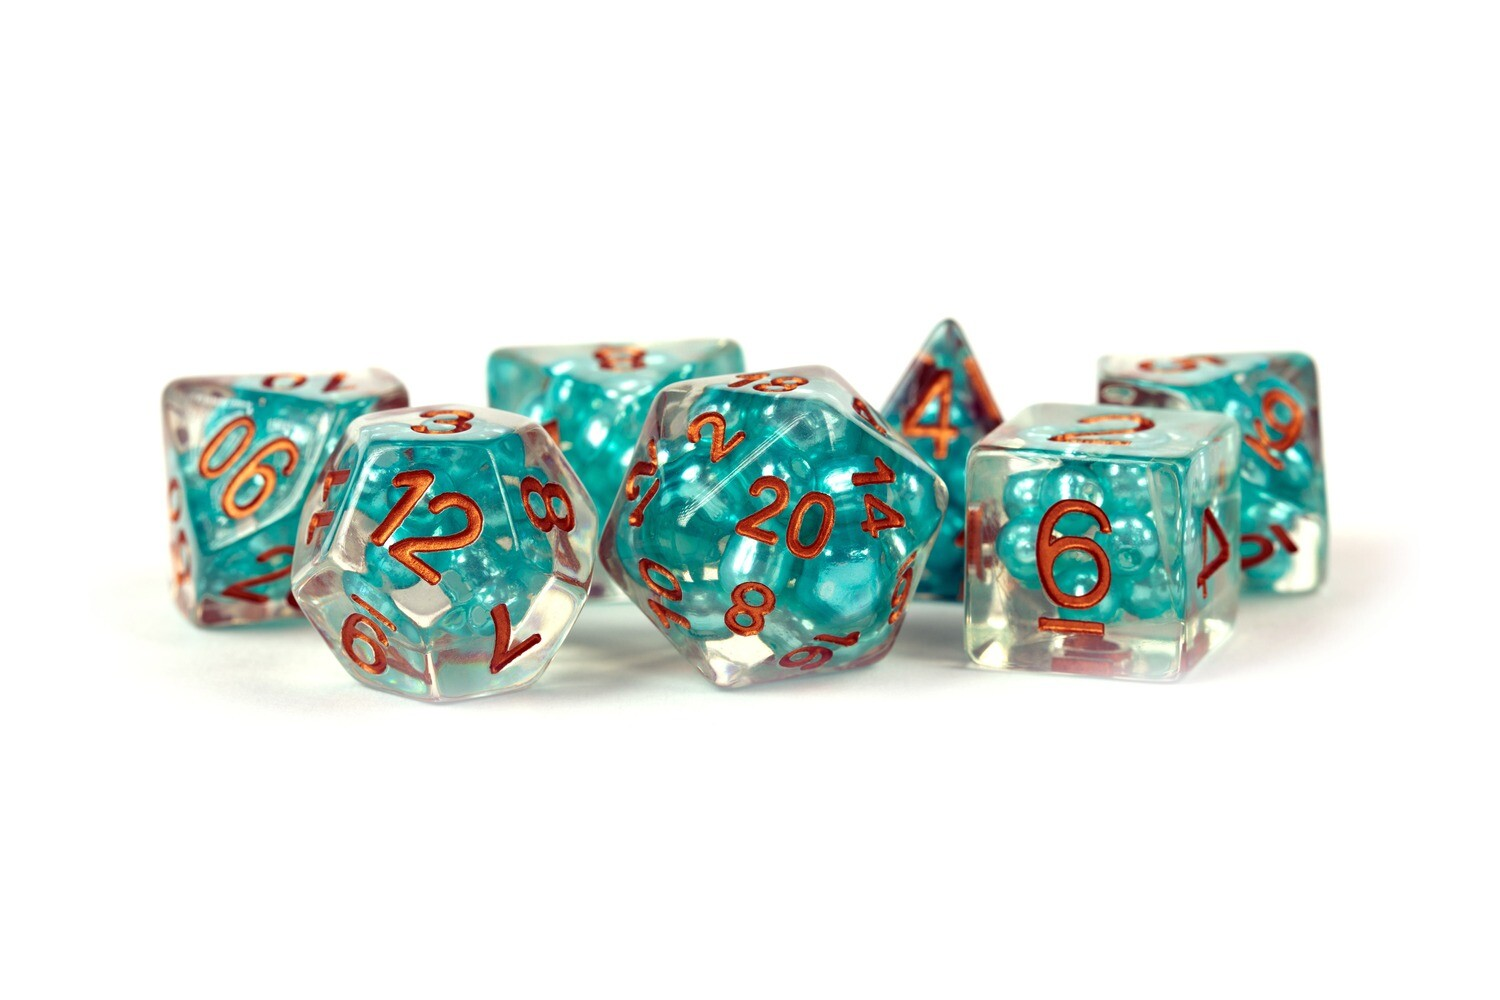 Pearl Dice Teal with Copper 16mm Resin Poly Dice Set Tabletop RPG CCG